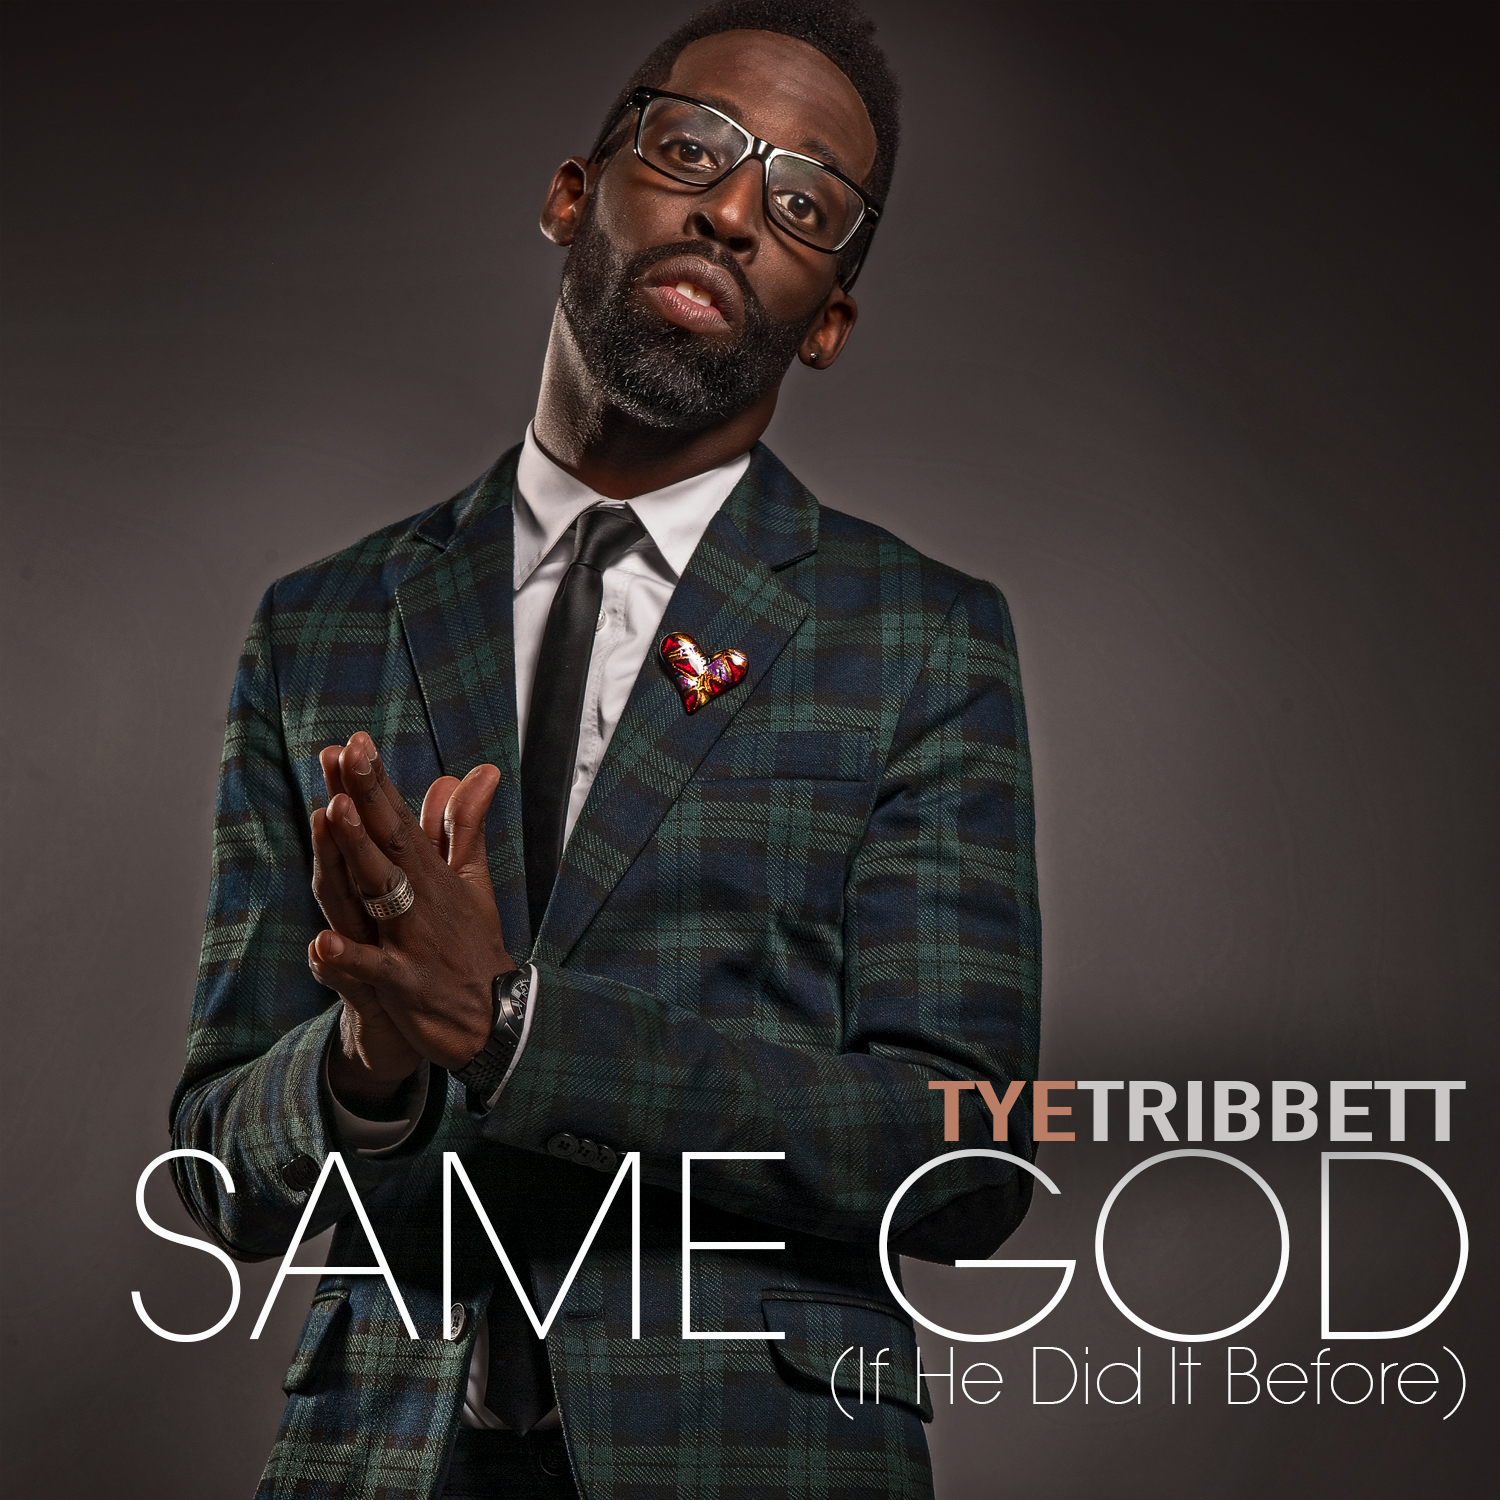 3b4454a8ec5505158e8206c945119a73 The Overflow (Gospel News Round Up):  Mali Music, Tye Tribbett, Deitrick Haddon, & Marvin Sapp